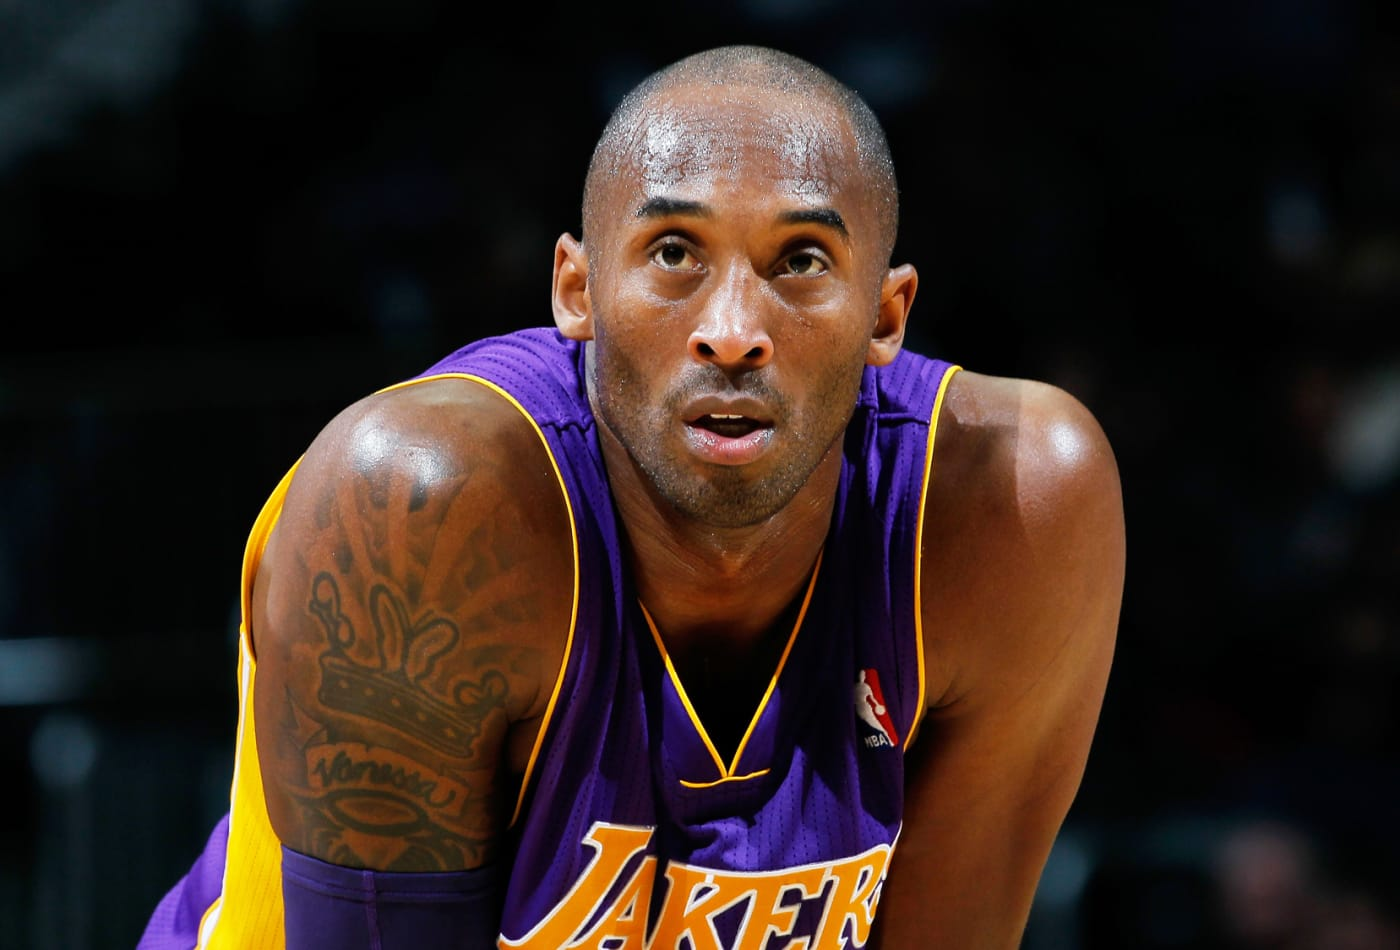 PICS: NBA Legend Kobe Bryant Dead At 41 Years Old